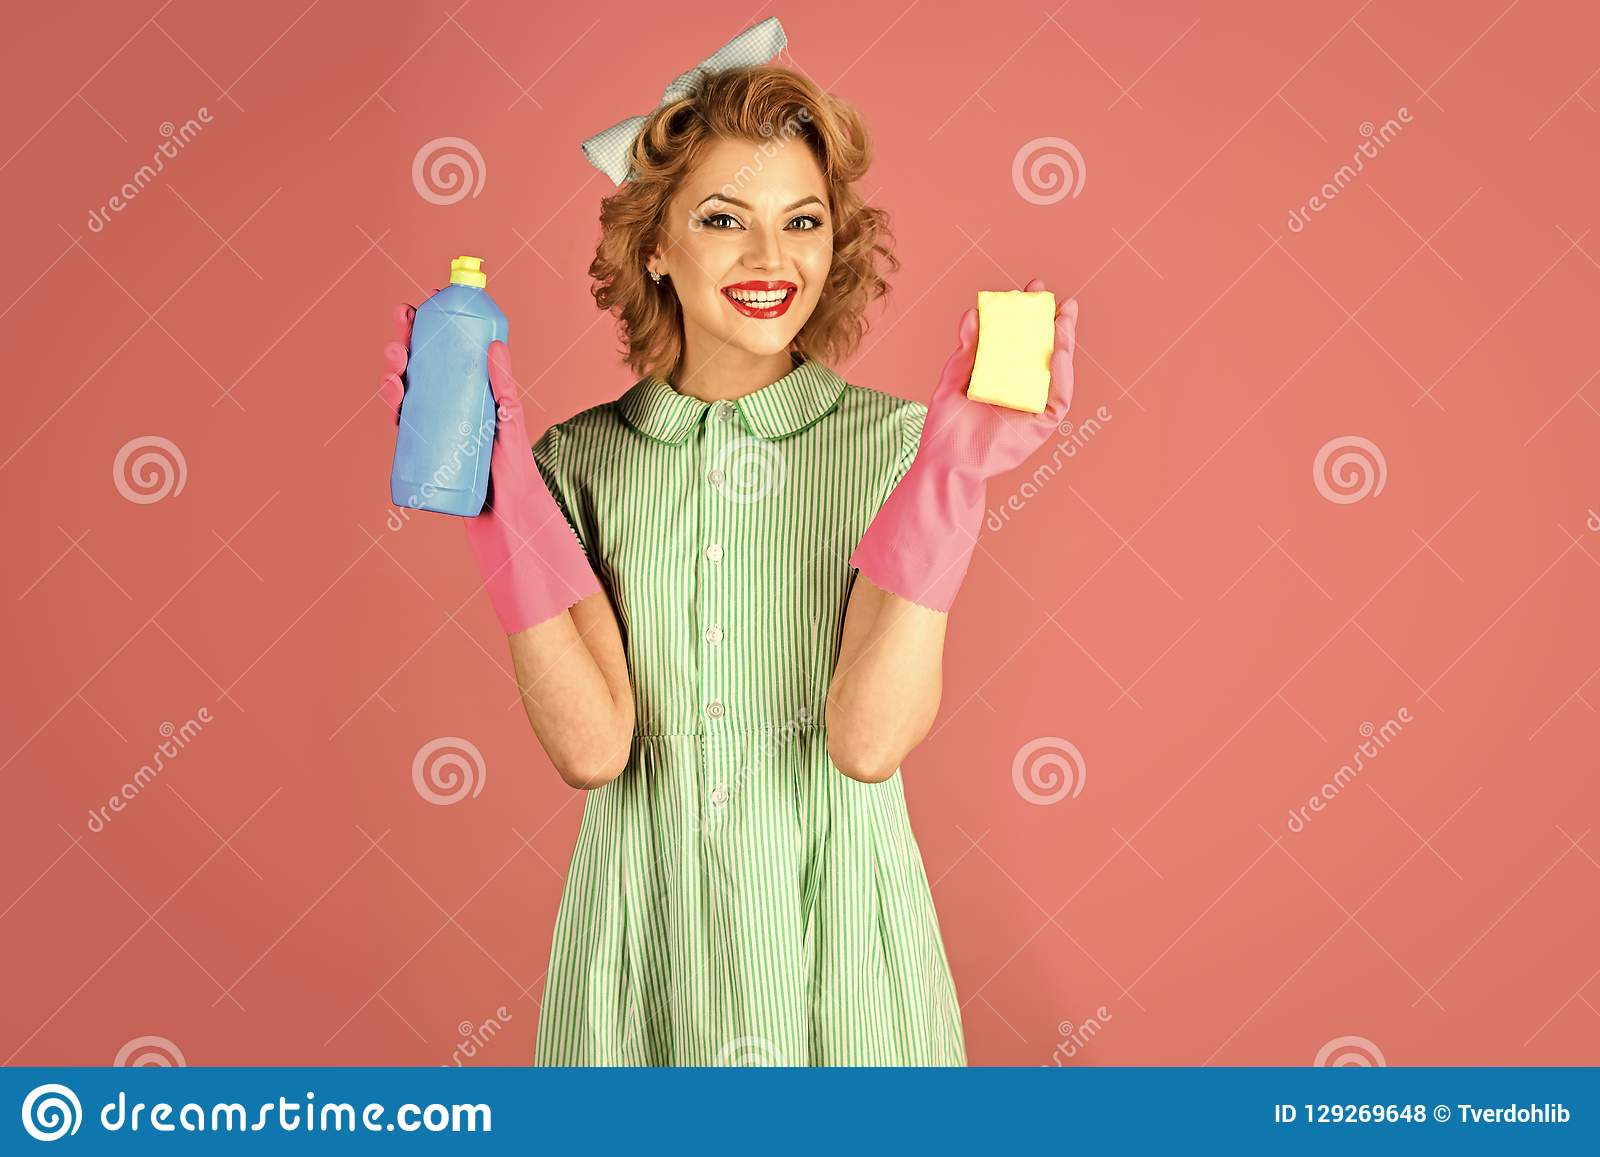 Cleanup, cleaning services, wife, gender.